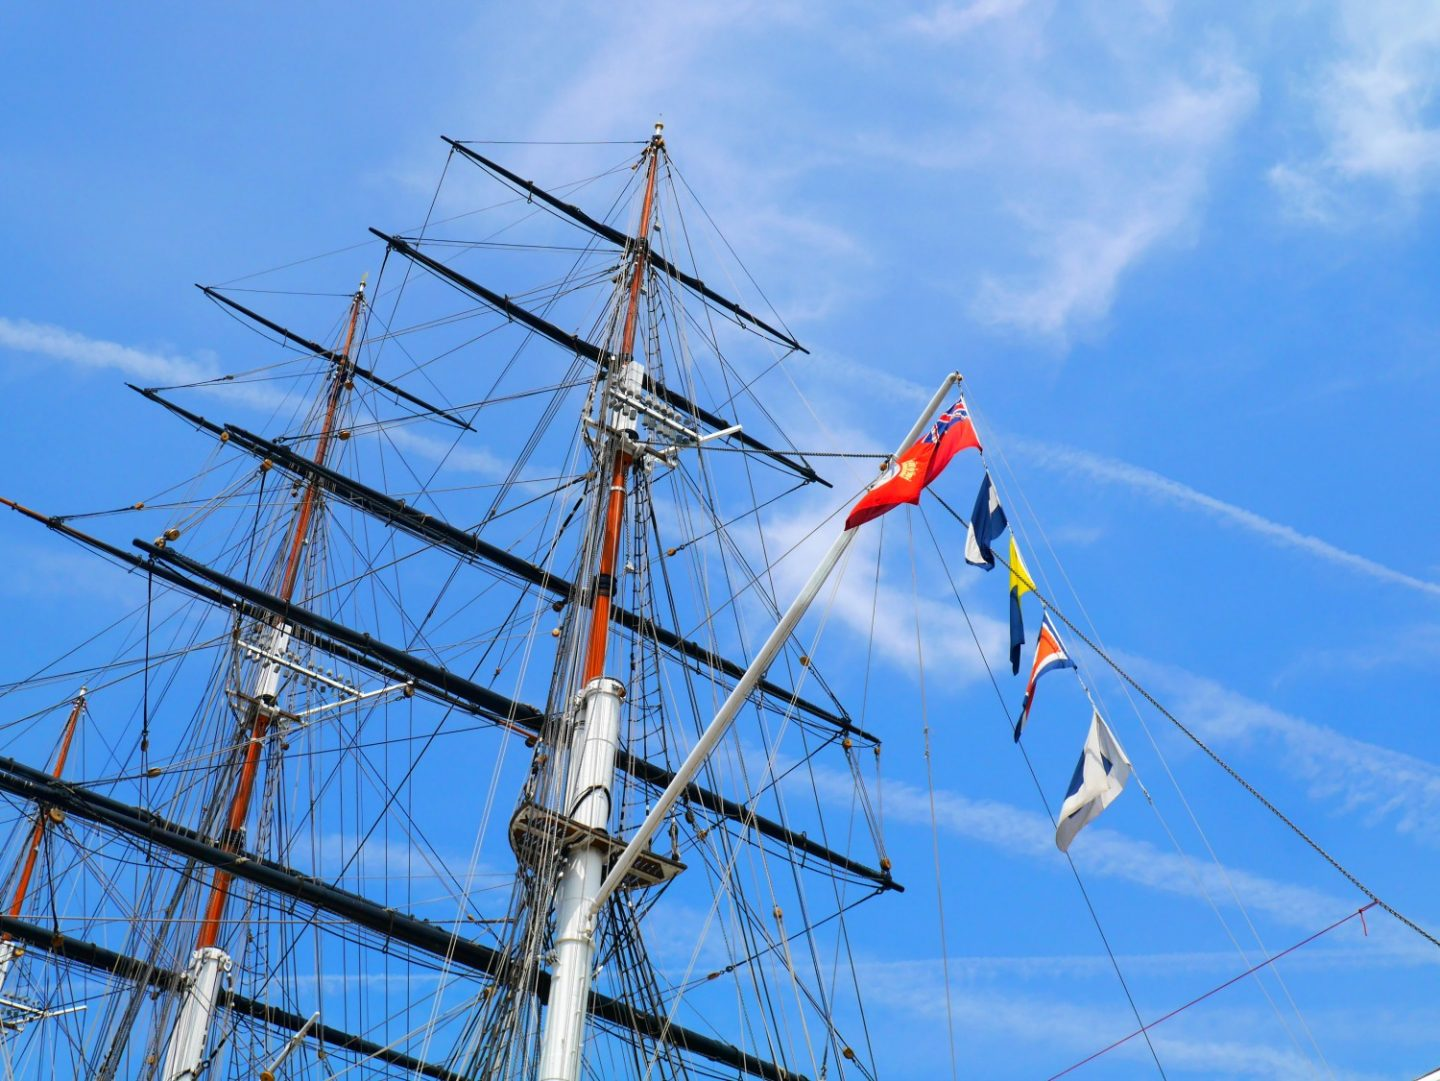 Cutty Sark review - top deck of the ship